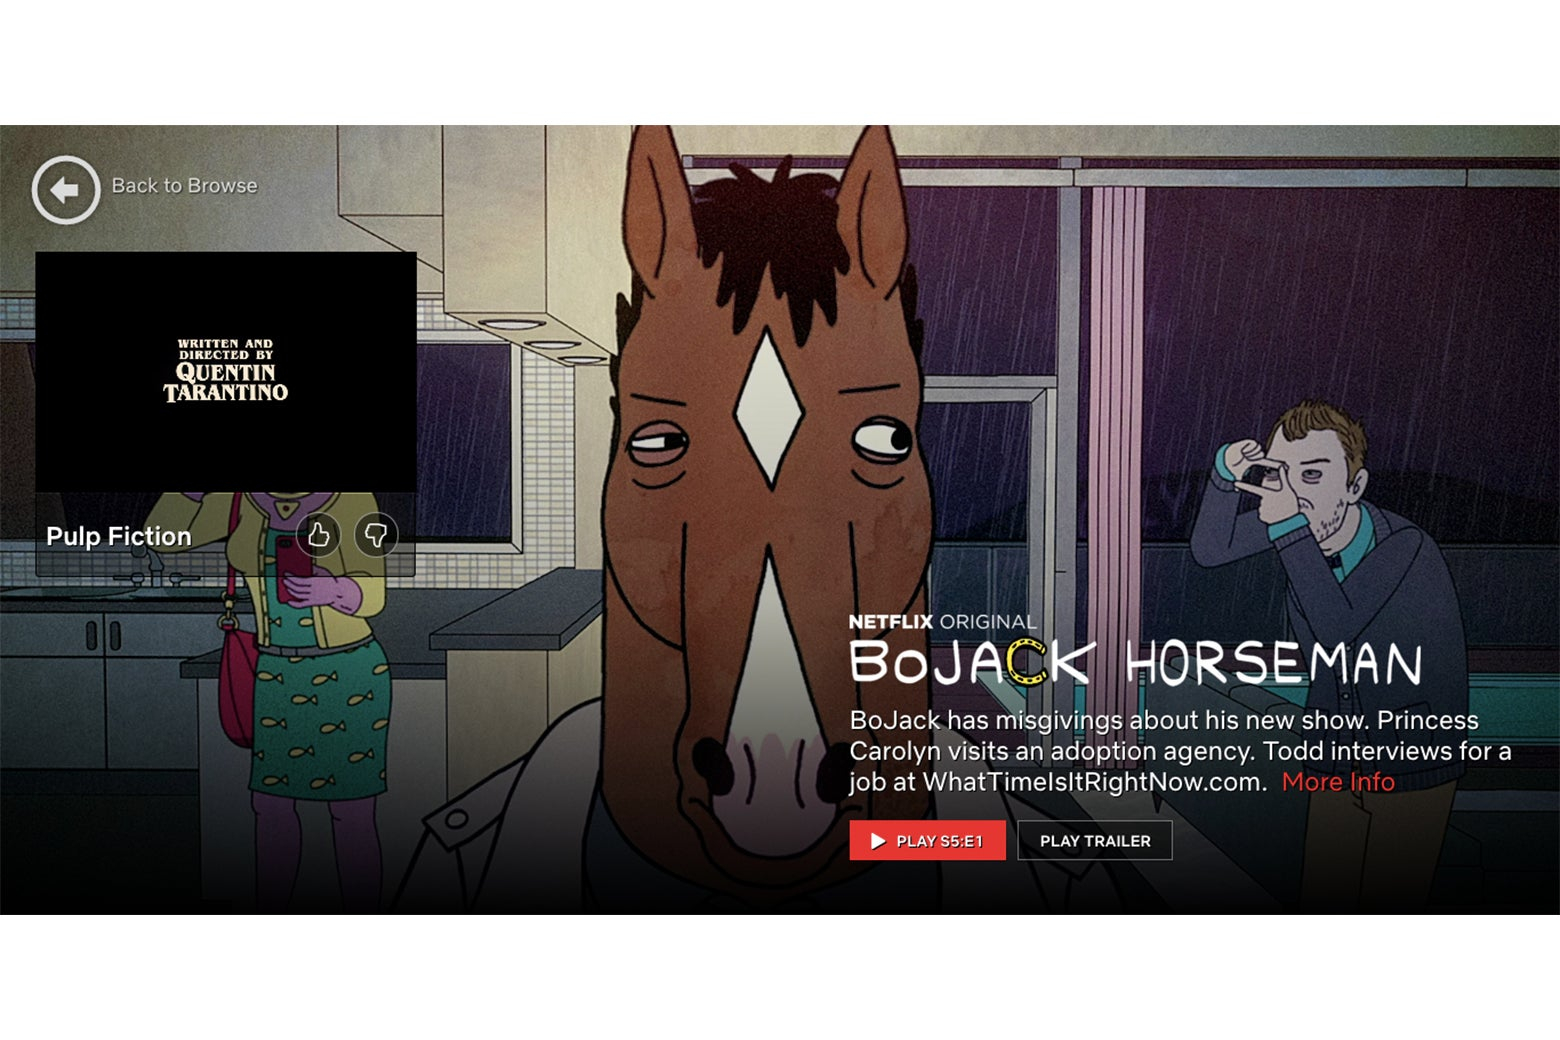 The closing credits of Pulp Fiction, buried in a giant ad for Bojack Horseman.